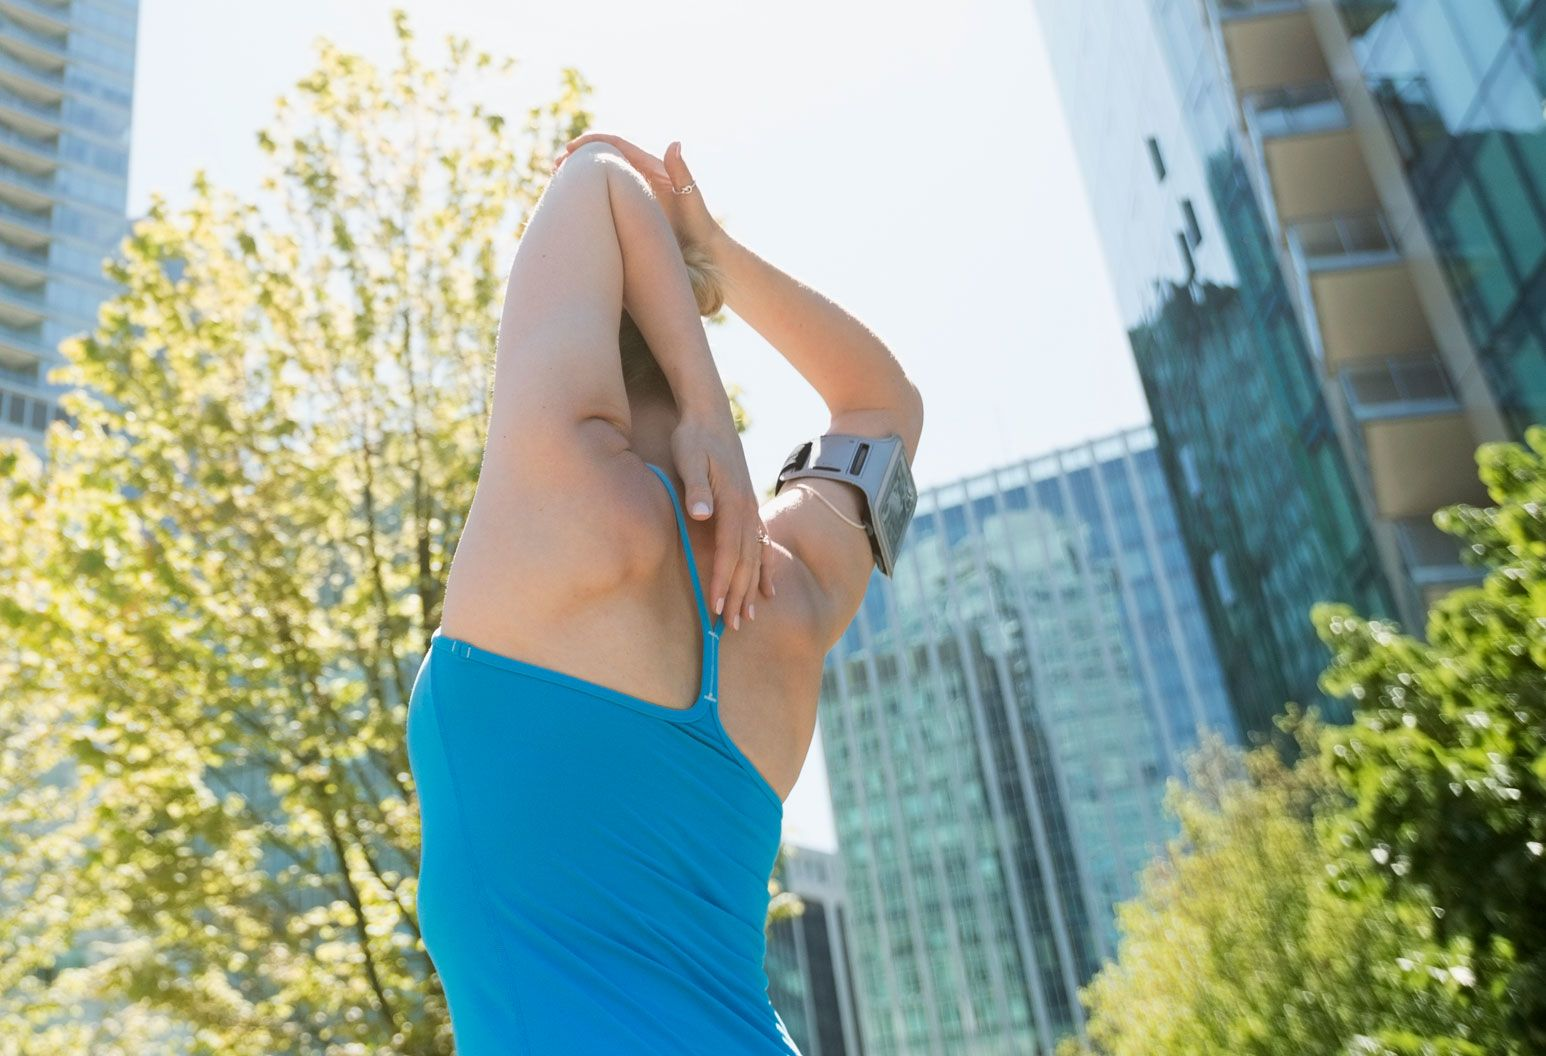 We see the back of a woman in a blue workout tank top, stretching her arm over her head. She is outside on a nice day.